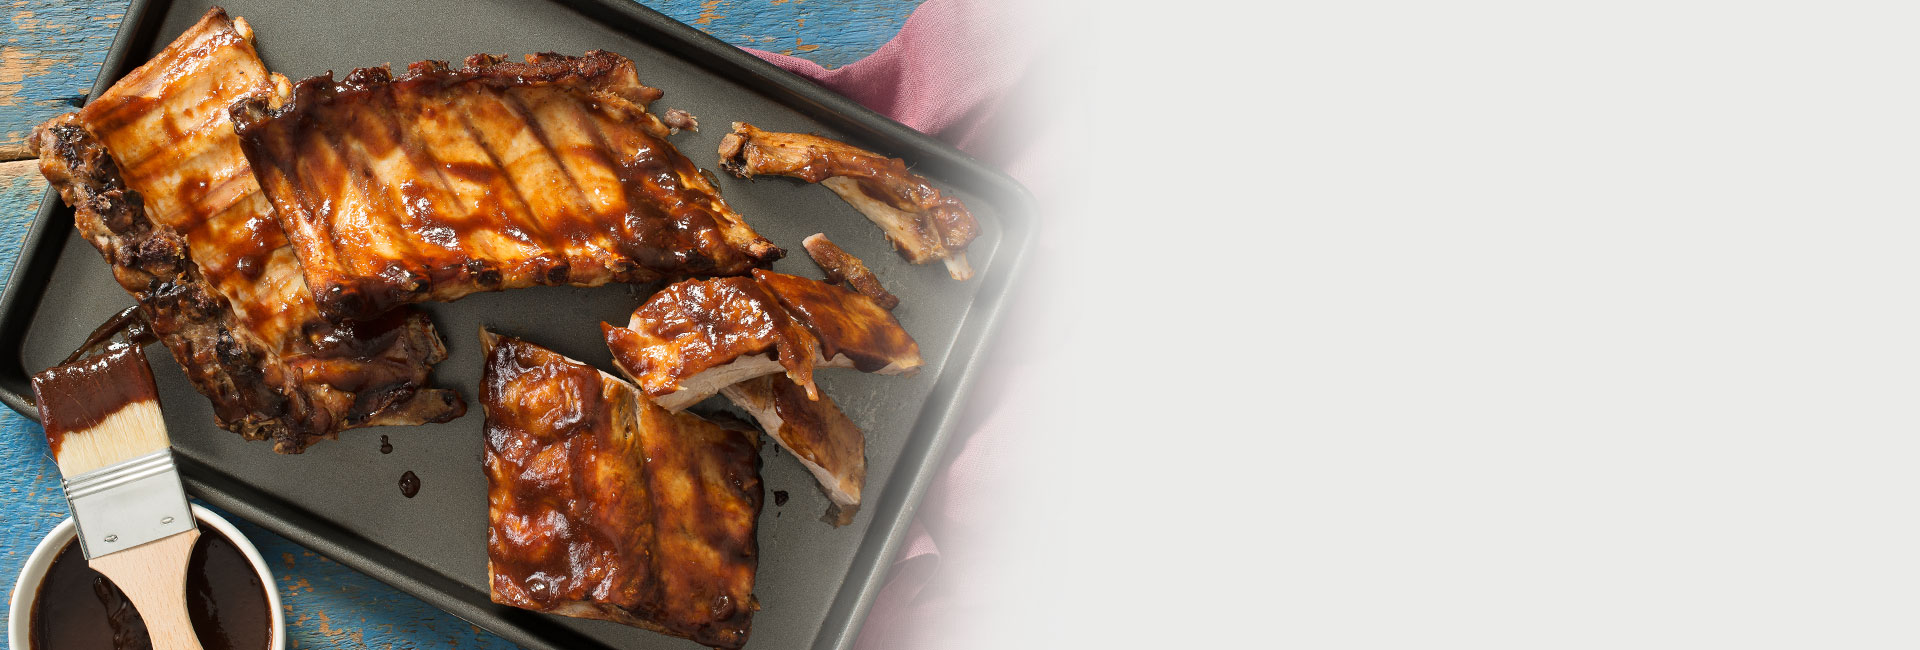 An overhead shot of juicy barbecue ribs on a pan with a brush with sauce sitting next to it.